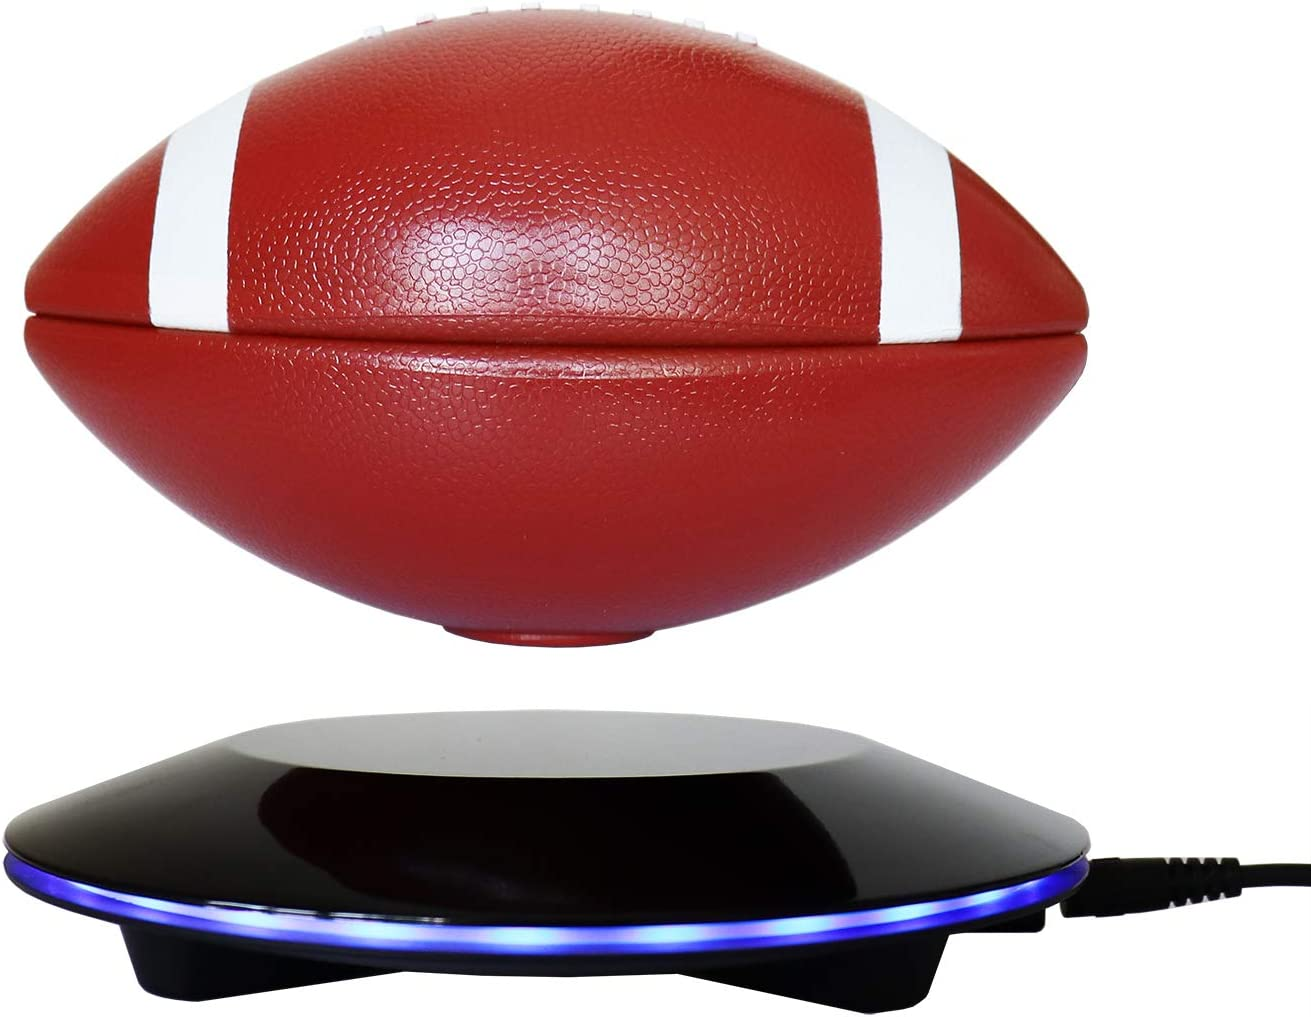 Floating Globe and Rotating Magic Magnetic Levitating Football Creative LED Strip Decoration Crafts for Home//Office//Festival D/écor